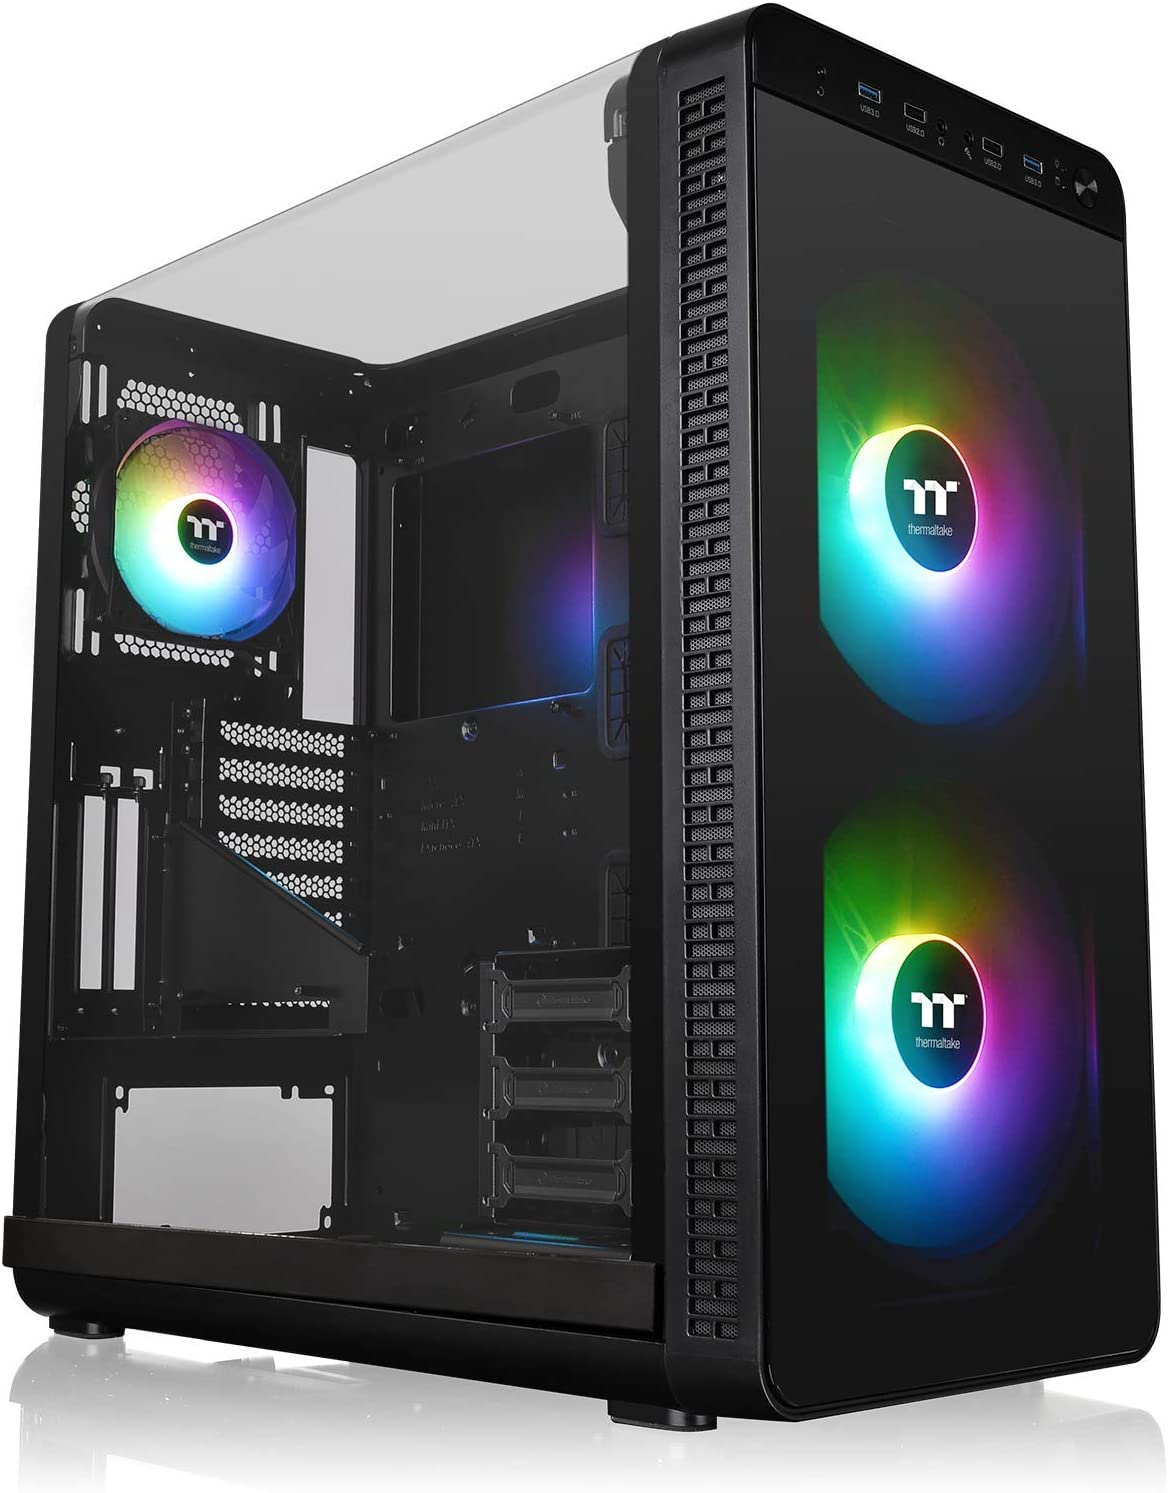 Thermaltake View 37 Motherboard Sync ARGB E-ATX Mid Tower Gaming Computer Case with 3 ARGB 5V Motherboard Sync RGB Fans Pre-Installed CA-1J7-00M1WN-04, Black